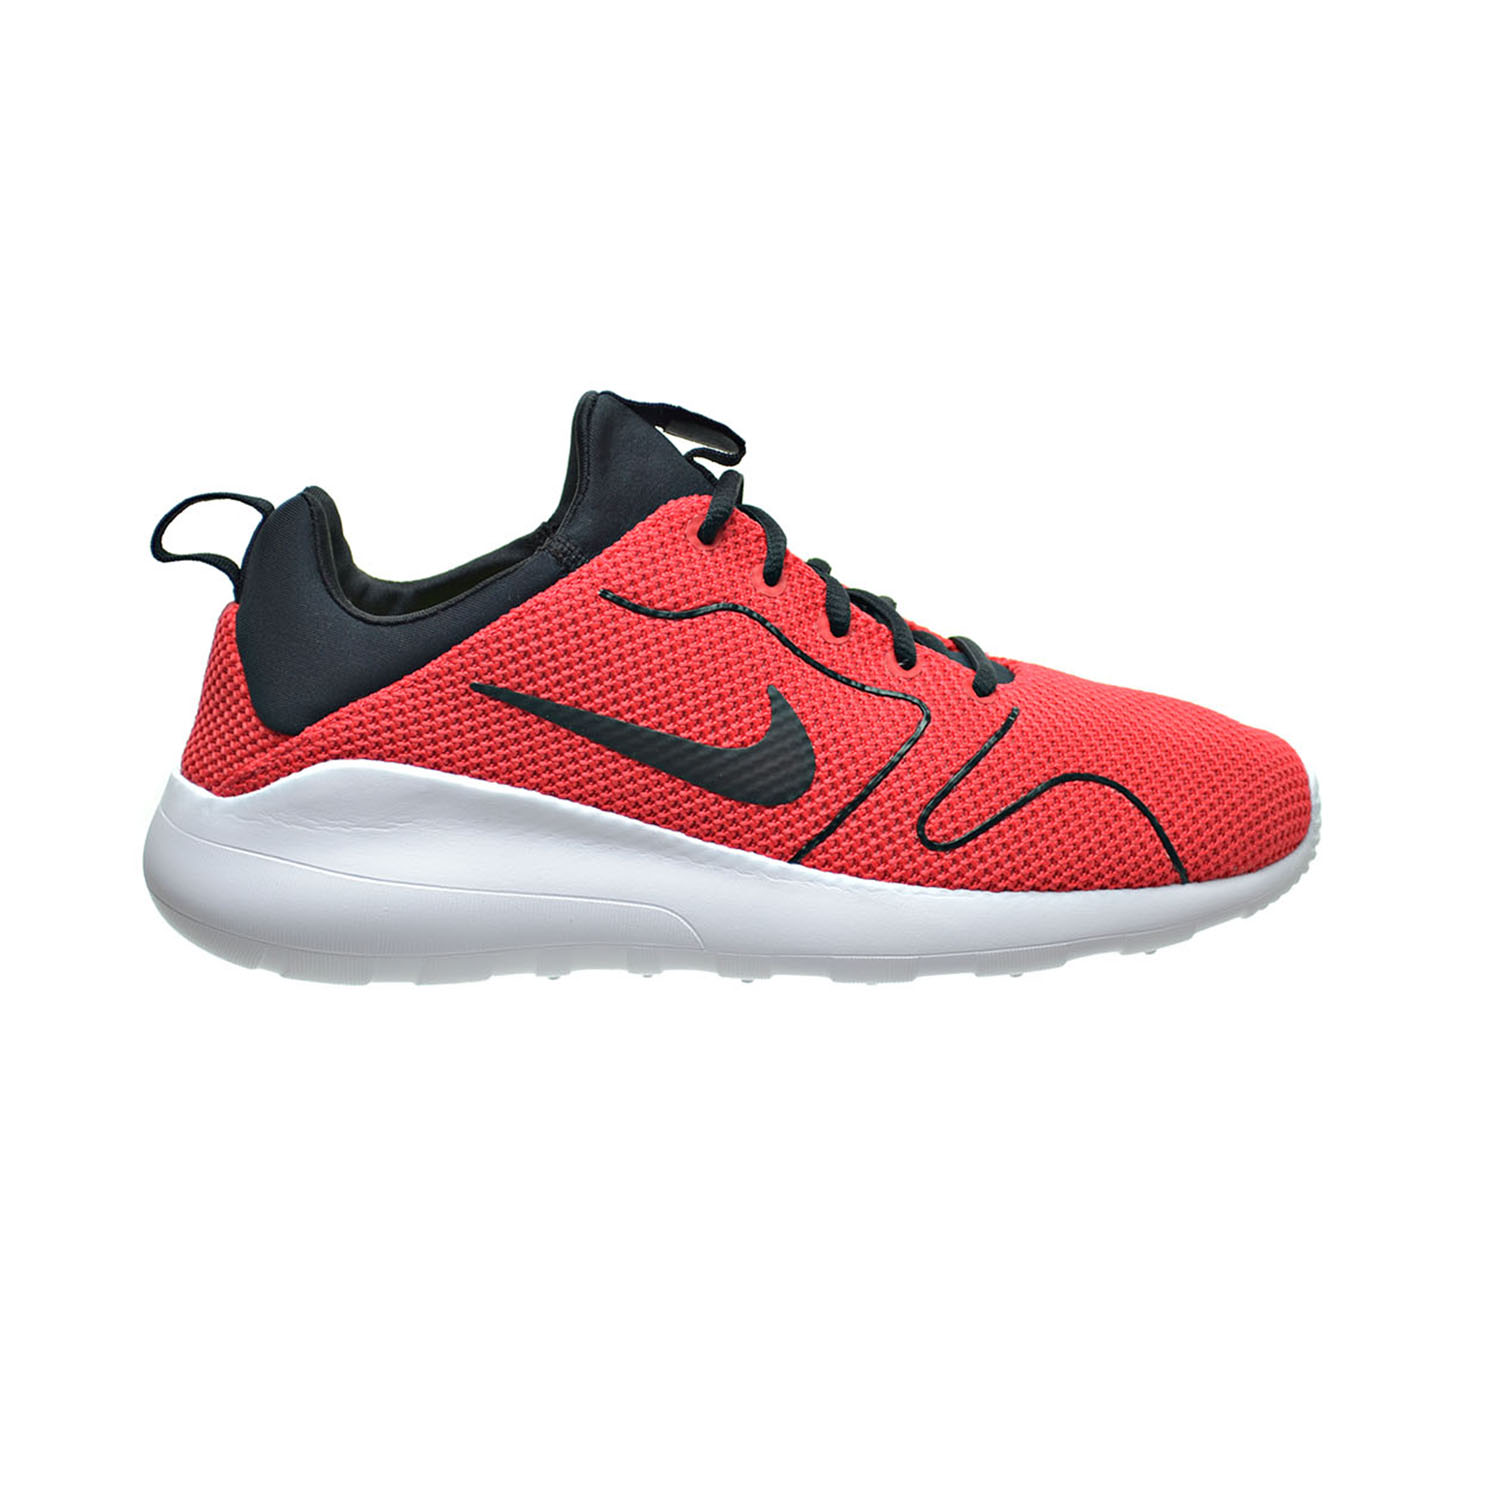 huge selection of ba0dc da085 ... coupon code for nike kaishi 2.0 se mens shoes action red black white  844838 601 c8c58